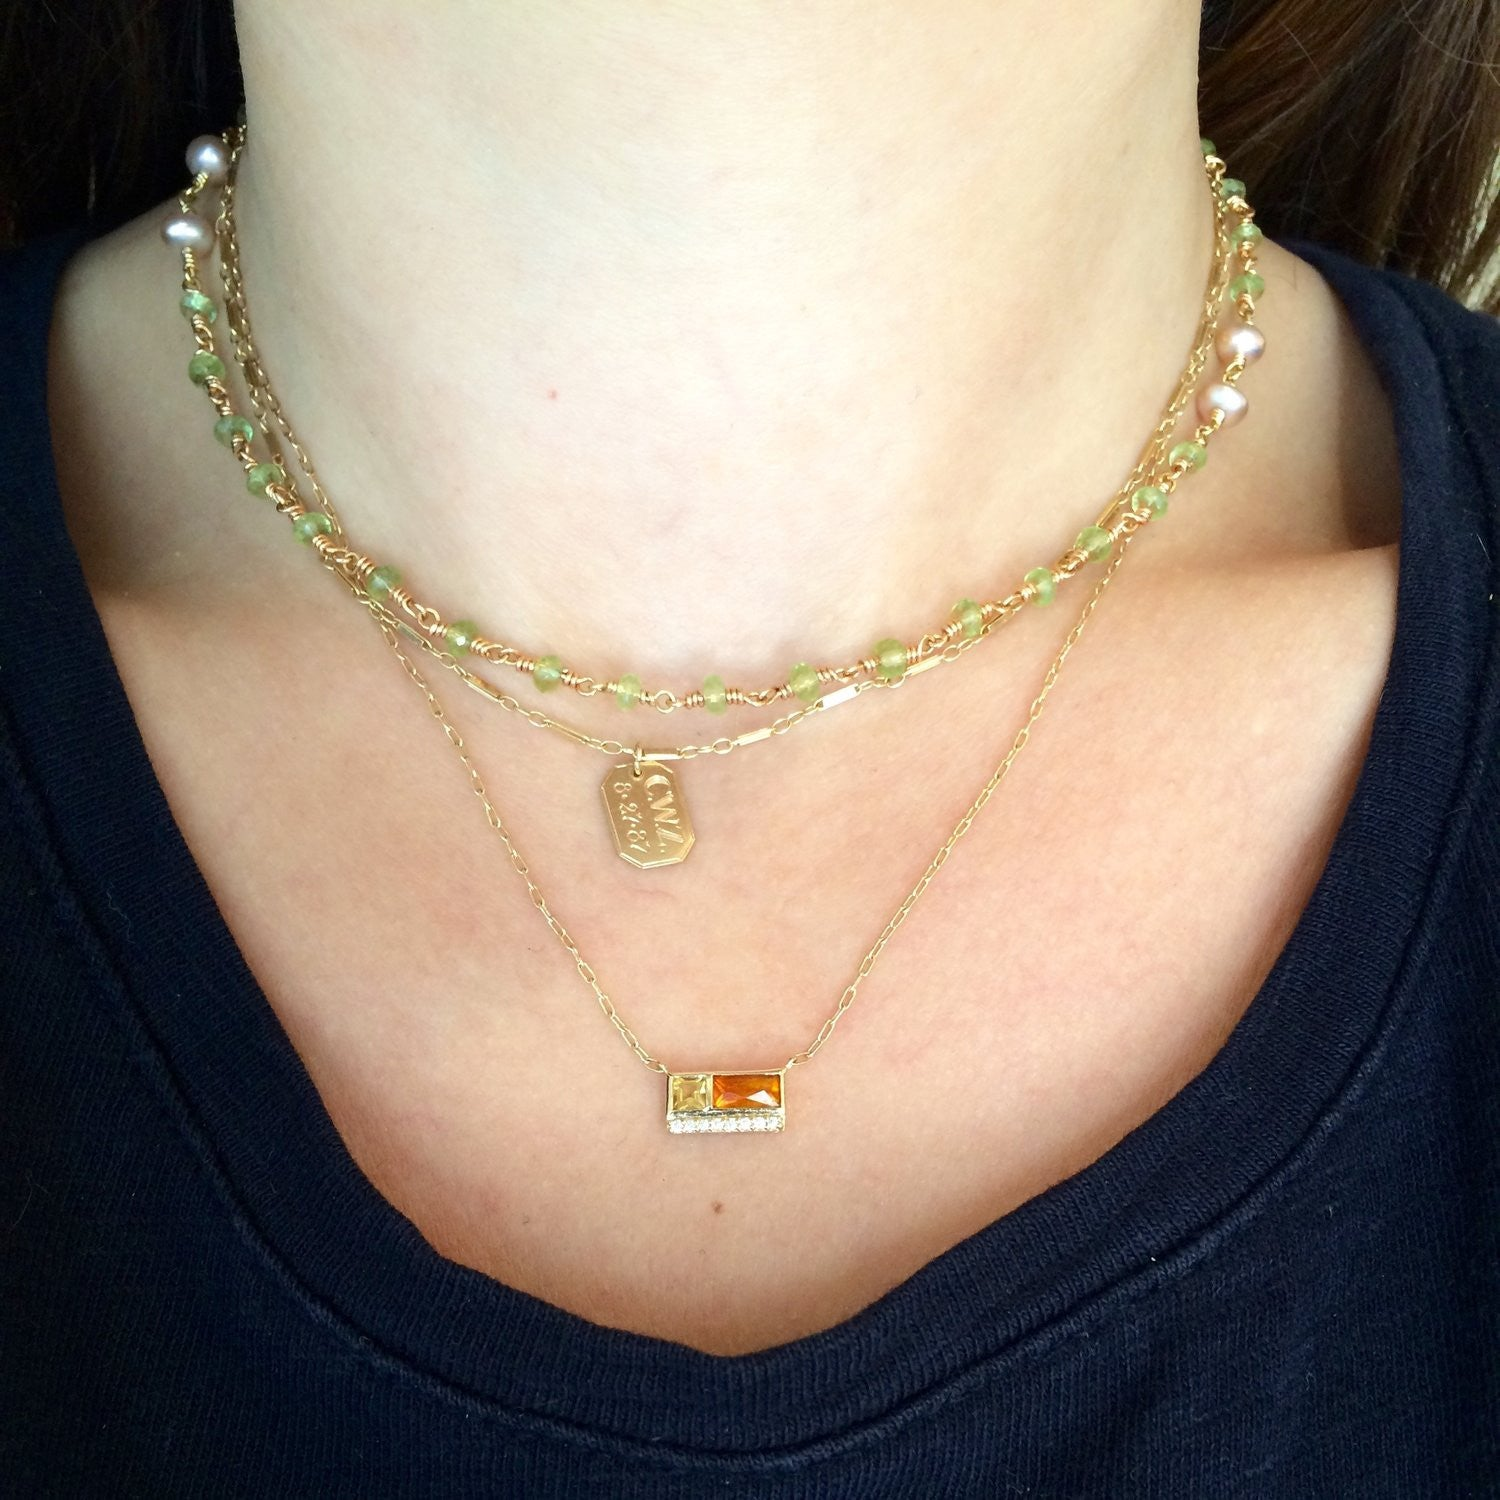 Jane Taylor Cirque Petite 2-Stone Necklace Citrine & Diamonds in 14K Yellow Gold